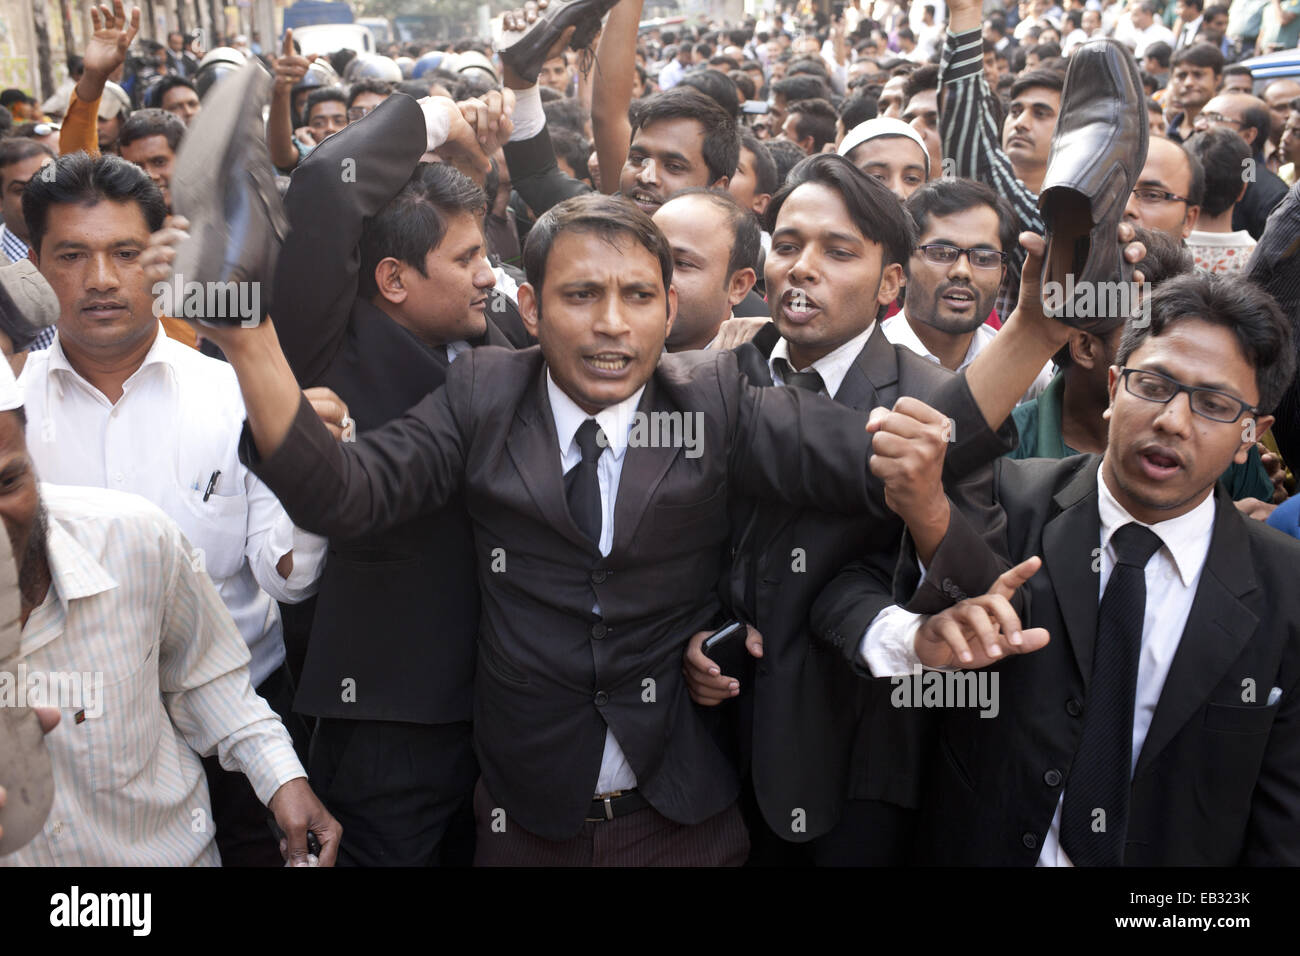 Dhaka, Bangladesh. 25th Nov, 2014. Lawyers take out a procession with showing shoes to the former minister of Bangladesh - Stock Image